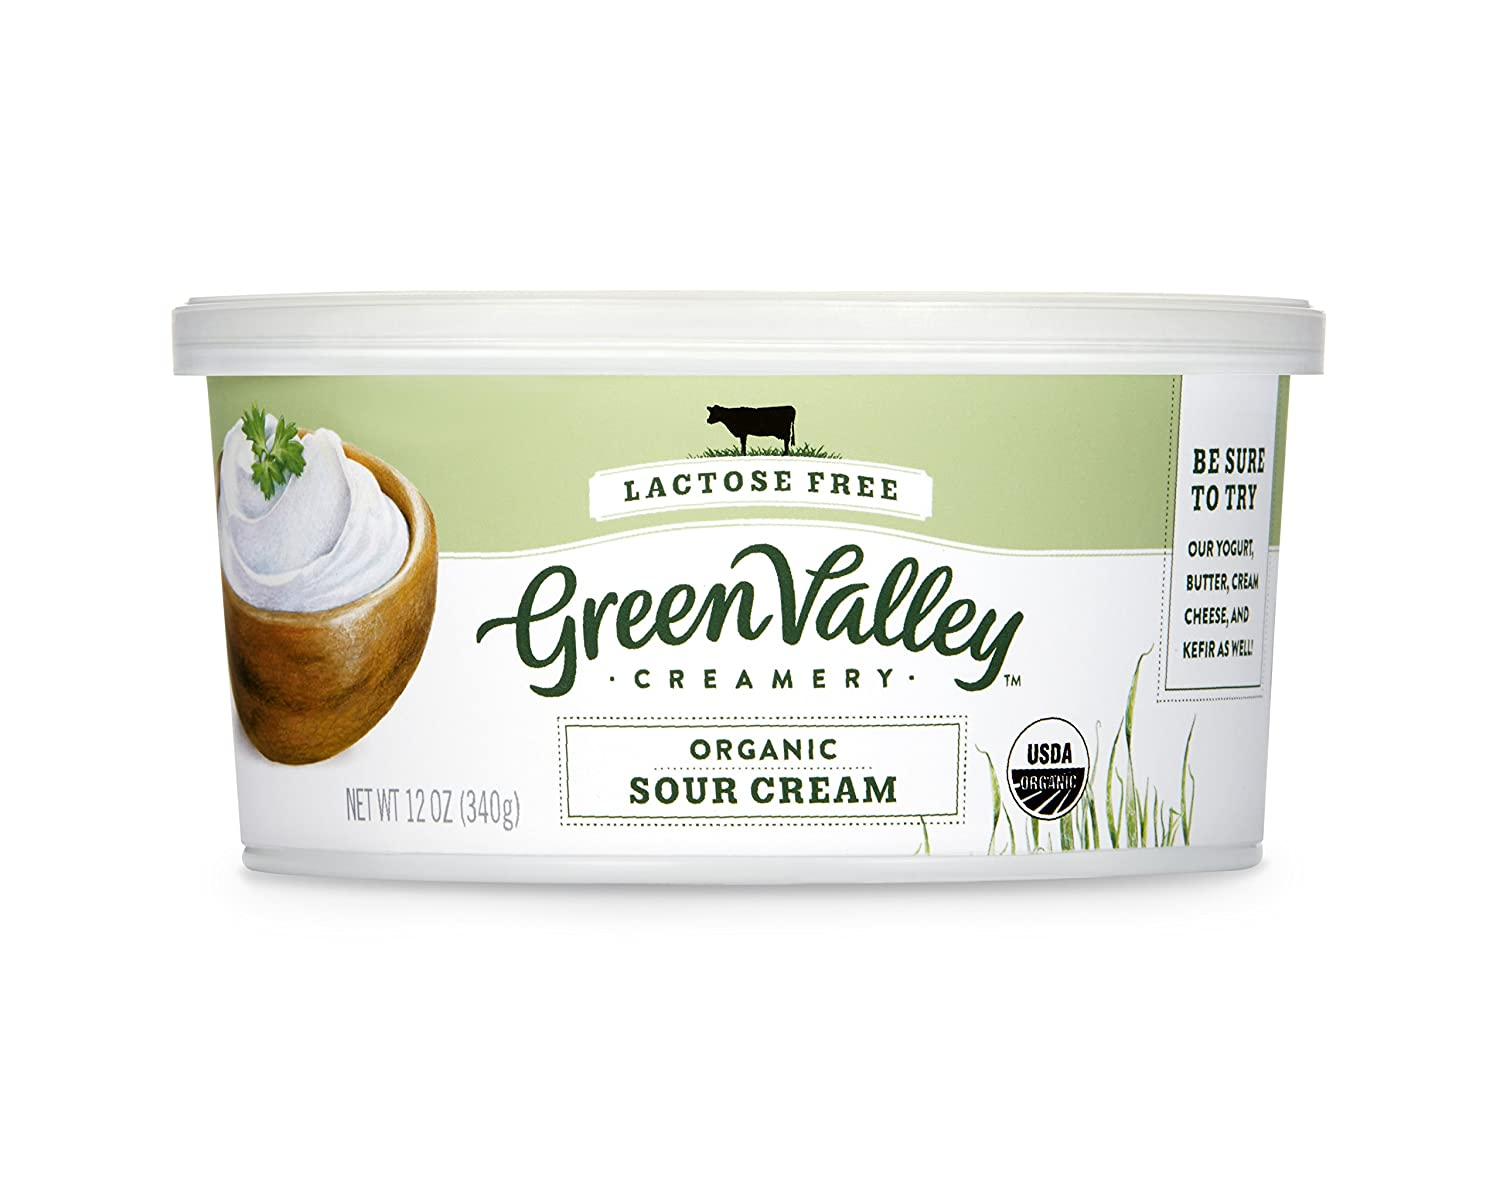 Green Valley Creamery Lactose Free Sour Cream 12 Oz Amazon Com Grocery Gourmet Food